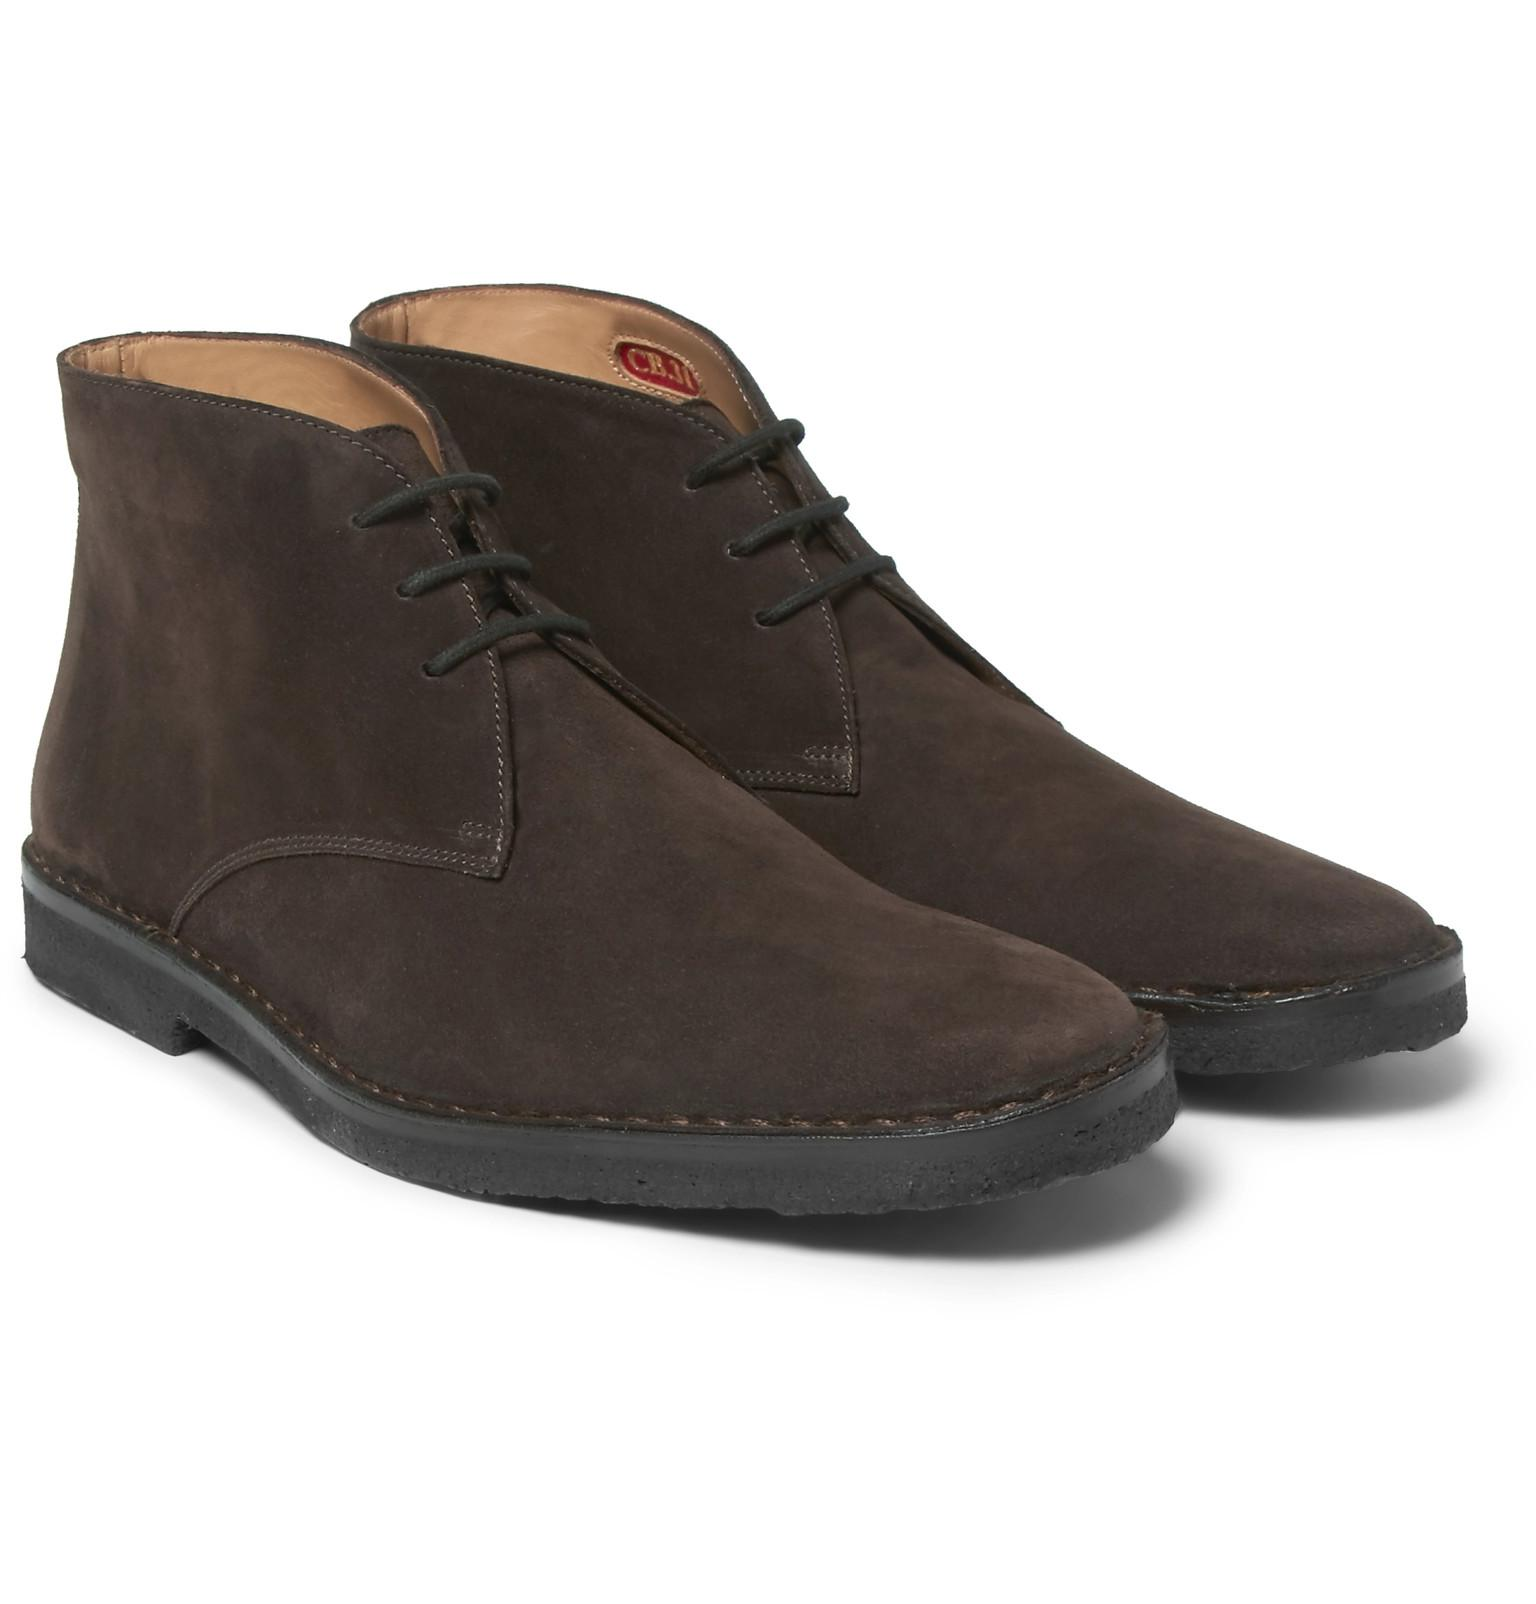 Connolly Suede Desert Boots buy cheap reliable zpUgHBOnBJ